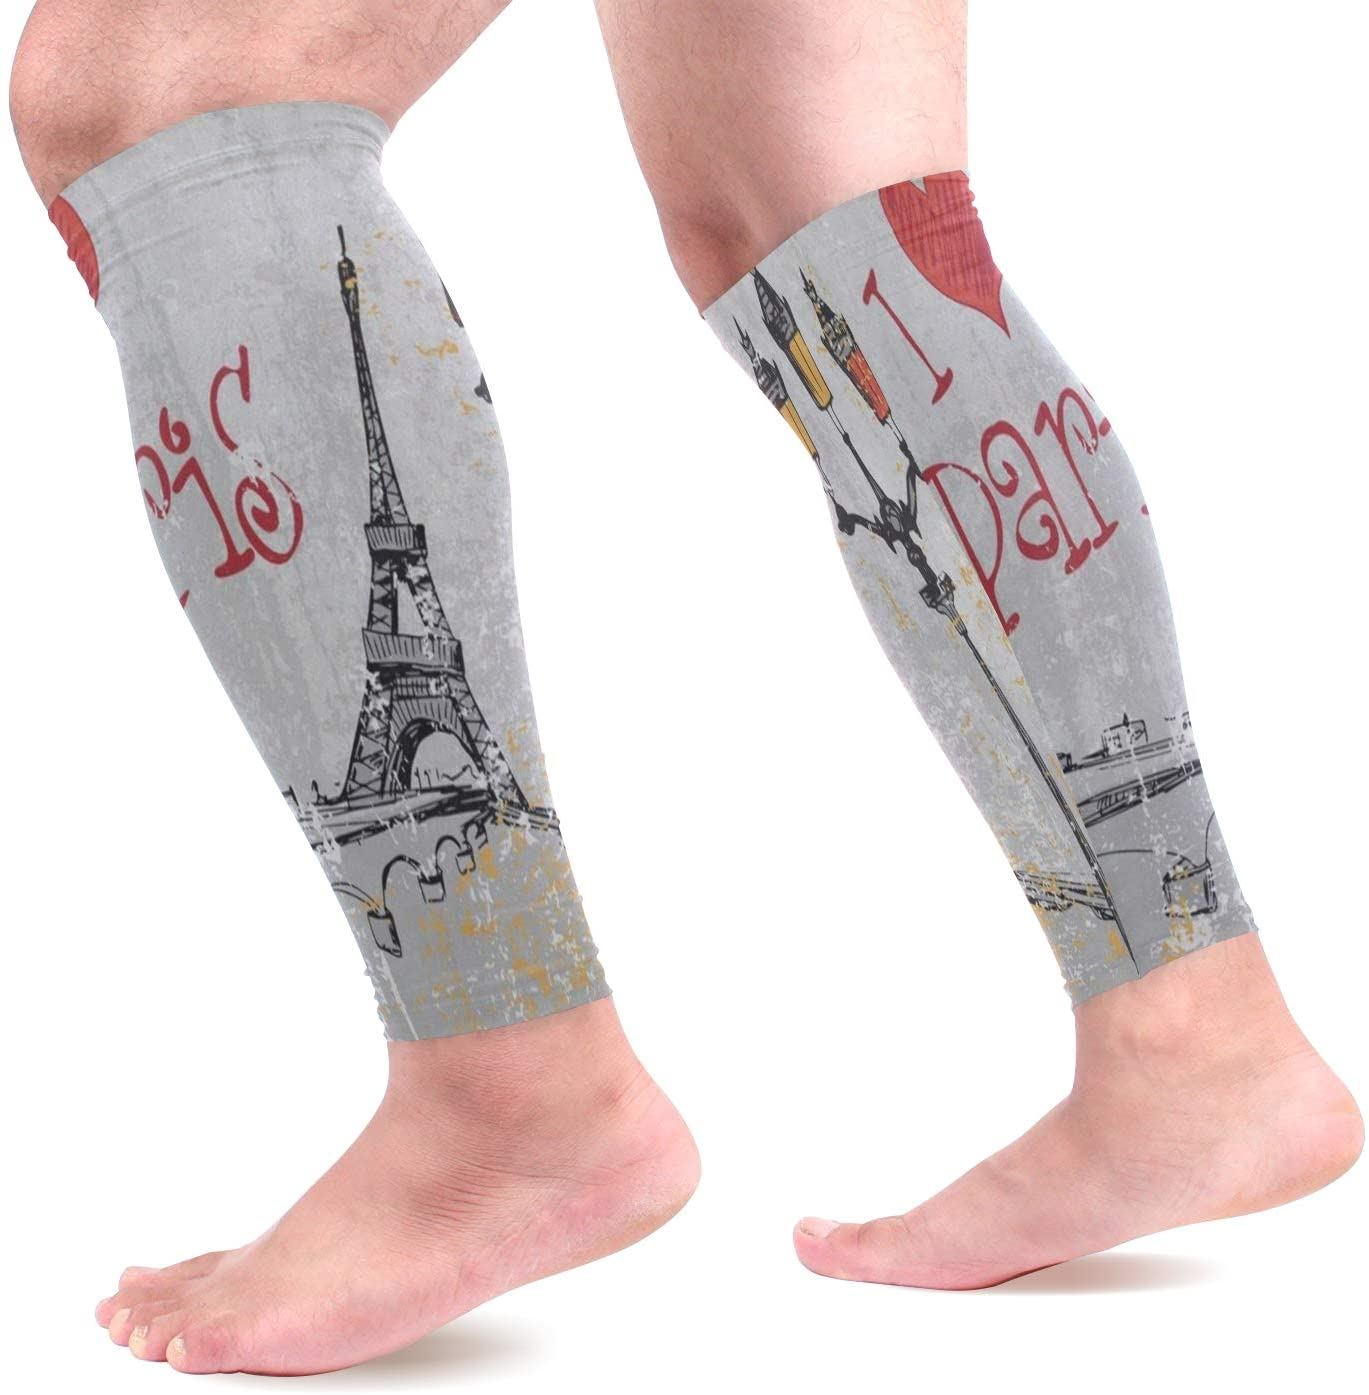 Calf Compression Sleeves Women Intage France Street Love Paris Eiffel Tower Footless Calf Compression Socks for Running Shin Splint Calf Pain Relief Leg Support Sleeve for Running Air Nurses Cycling M